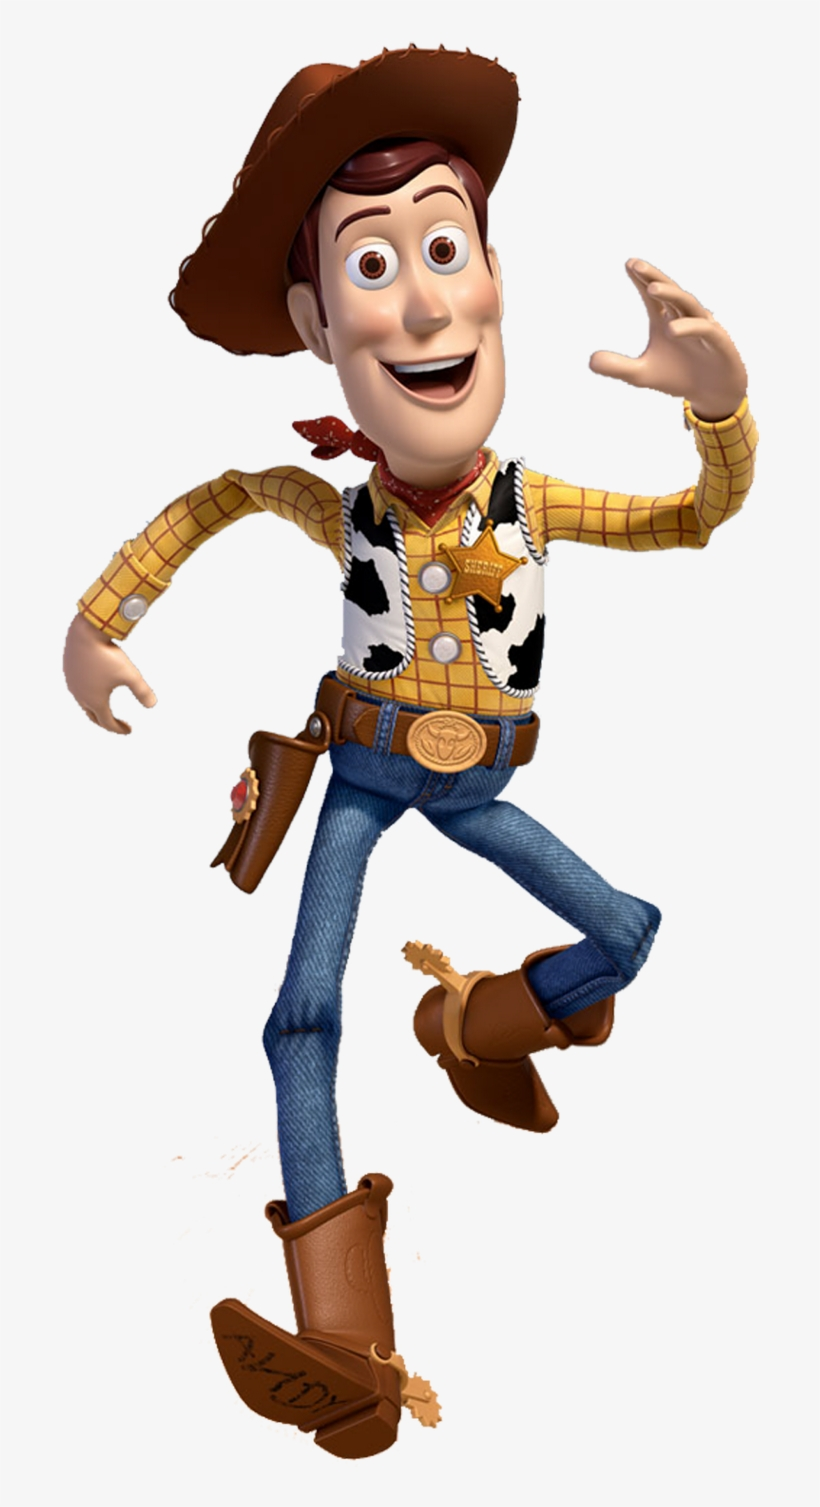 Gifs Y Fondos Pazenlatormenta - Woody Toy Story Png, transparent png #35436